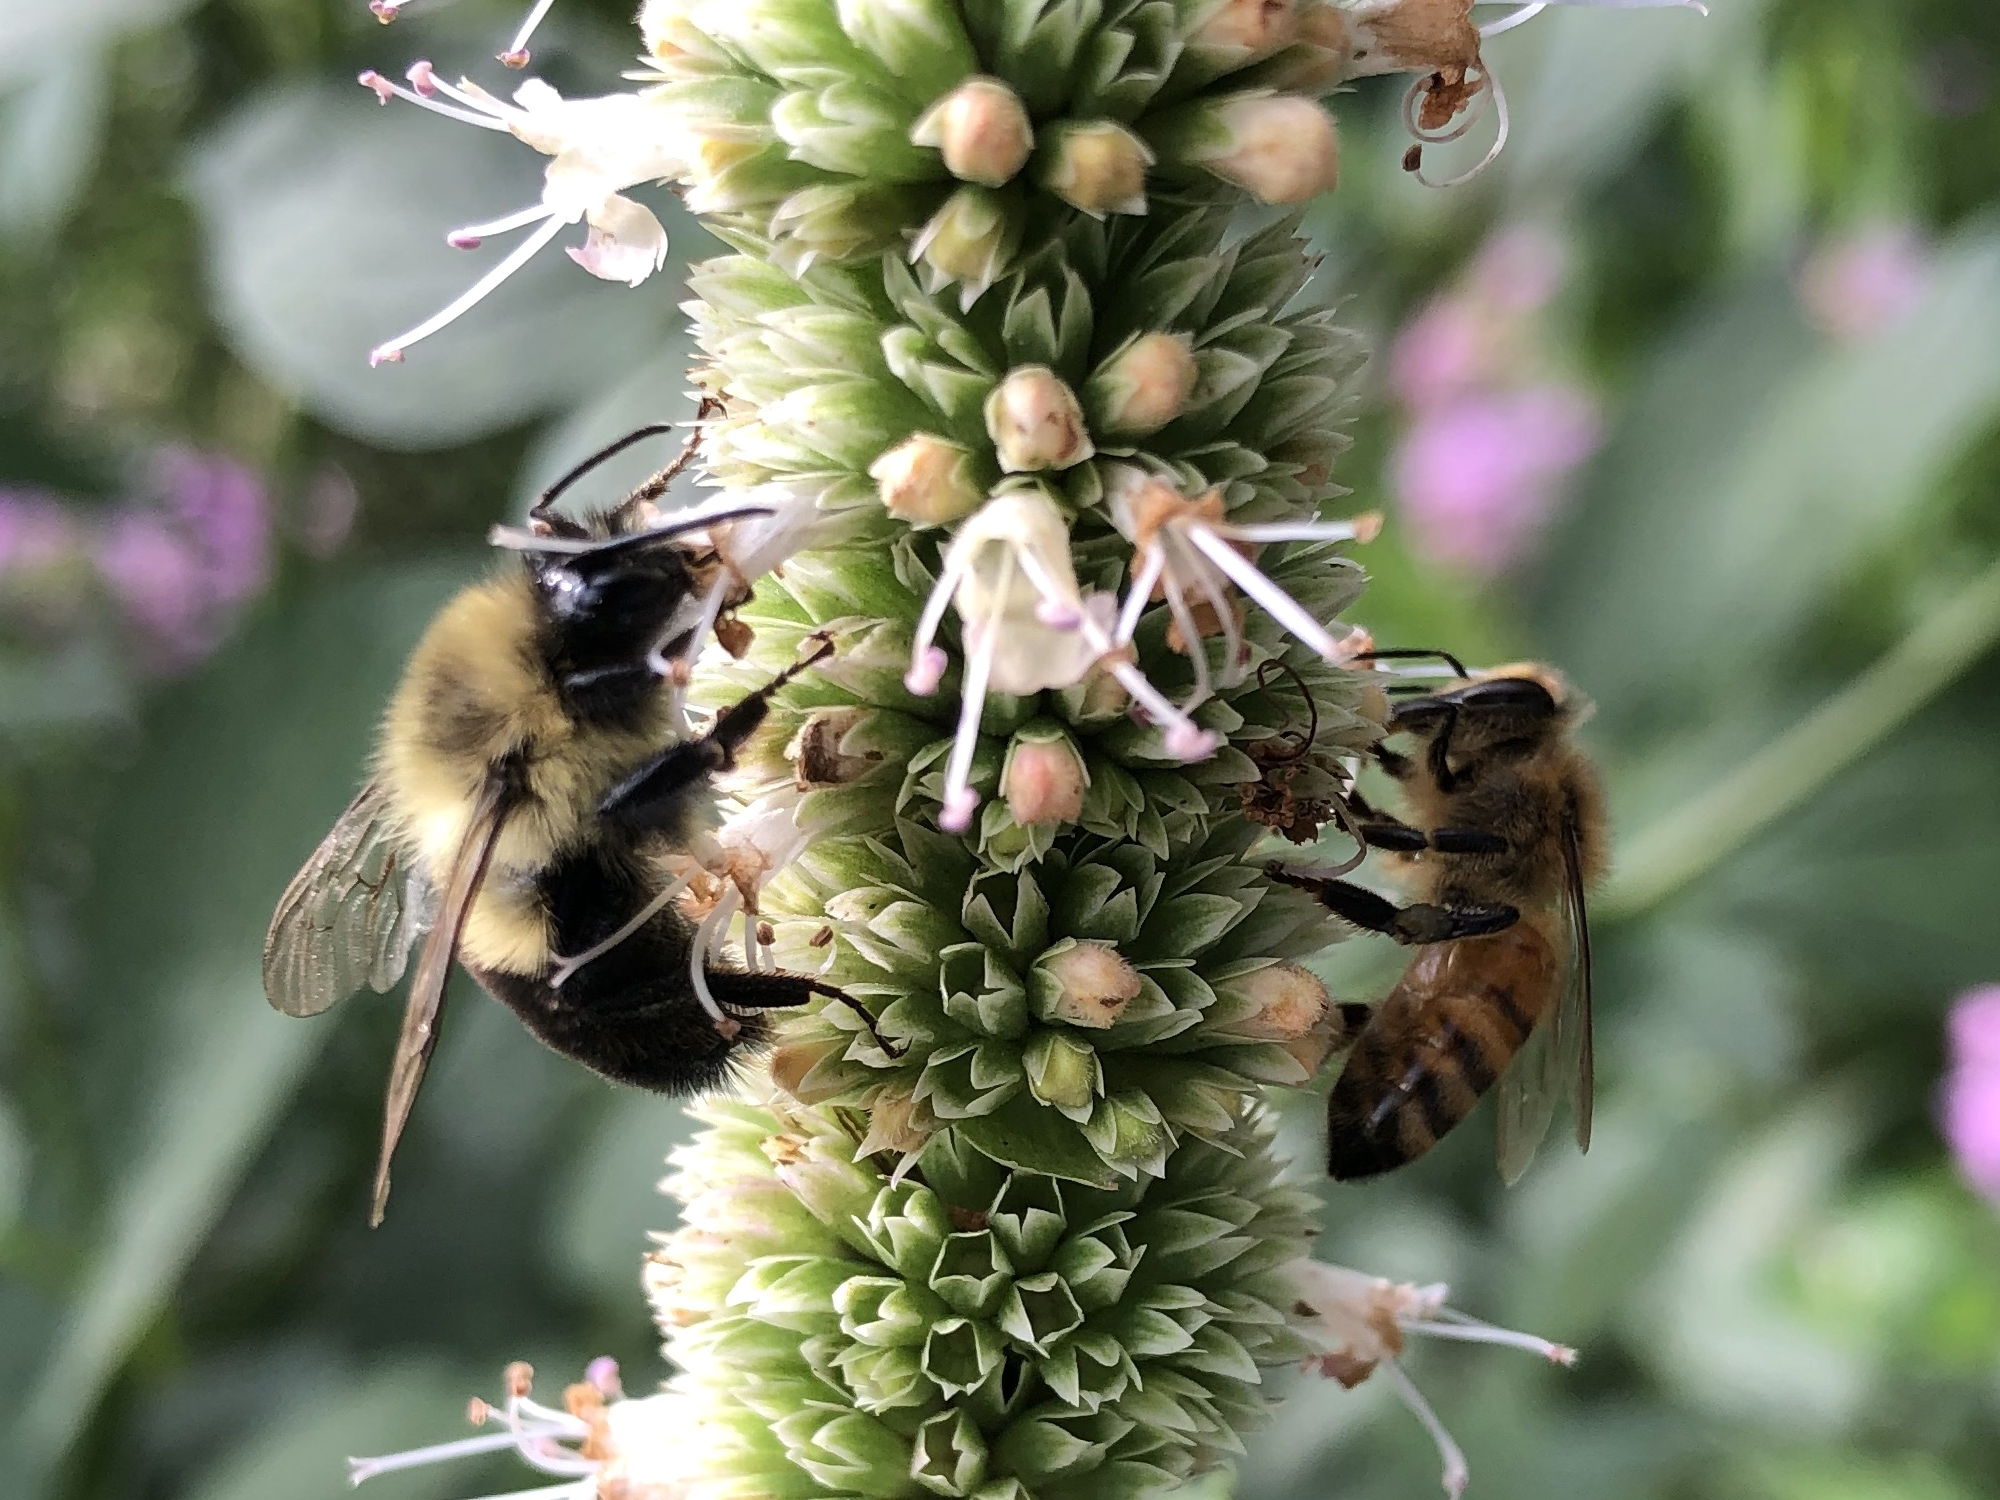 Bees on Giant Hyssop on August 22, 2020.